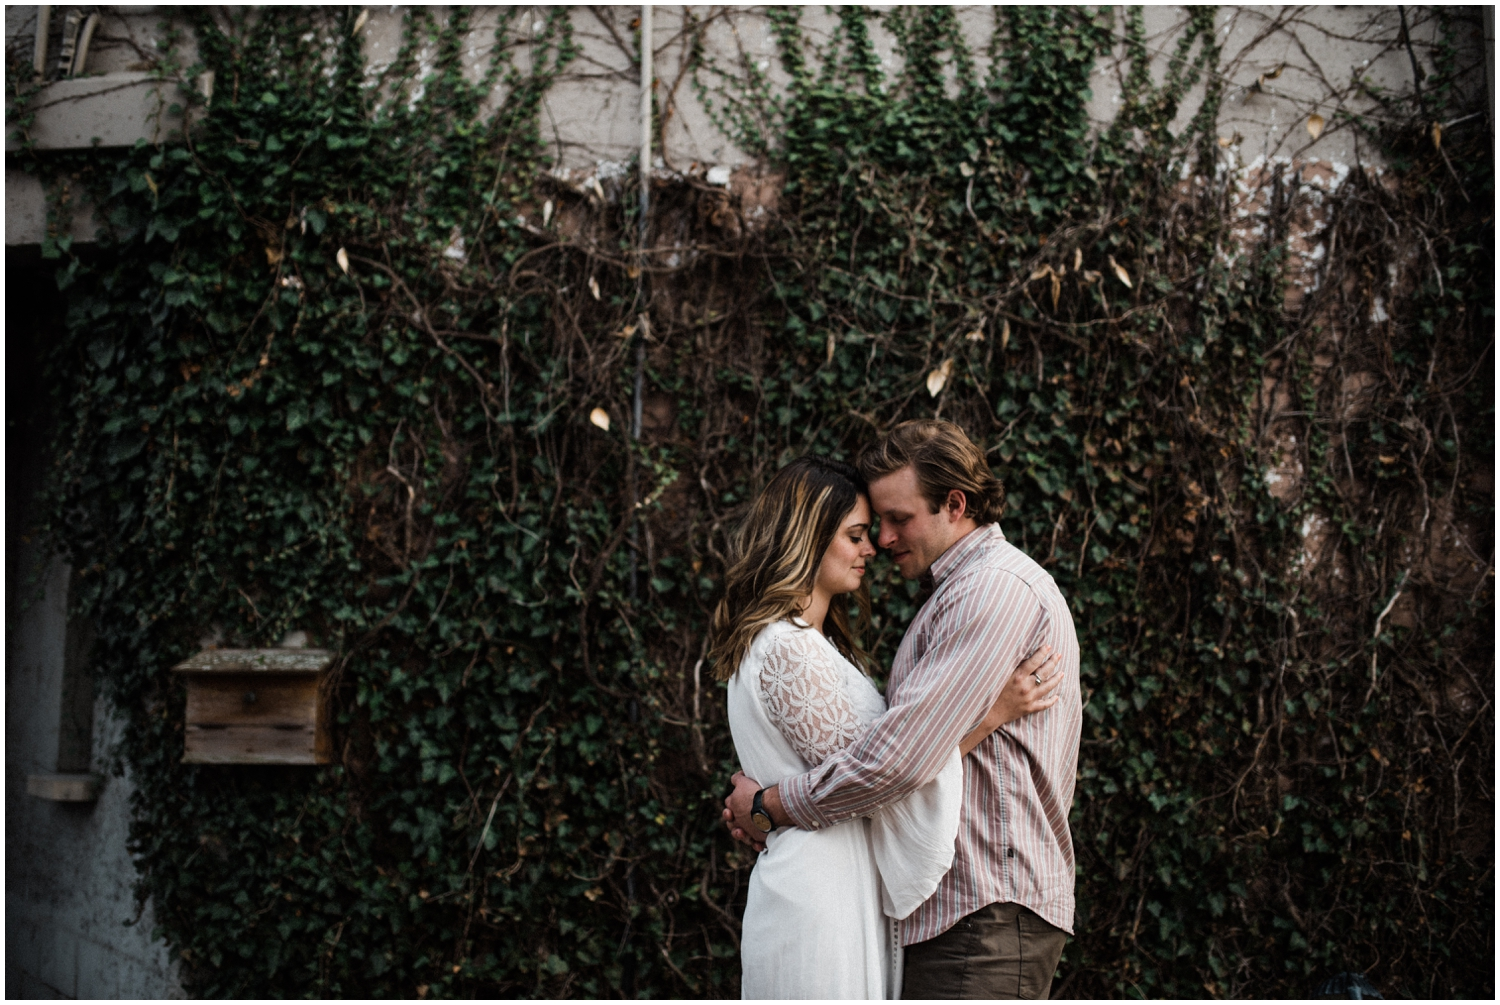 Chelsea-Hall-Photography-Dayton-OH- Engagement-Session_0117.jpg